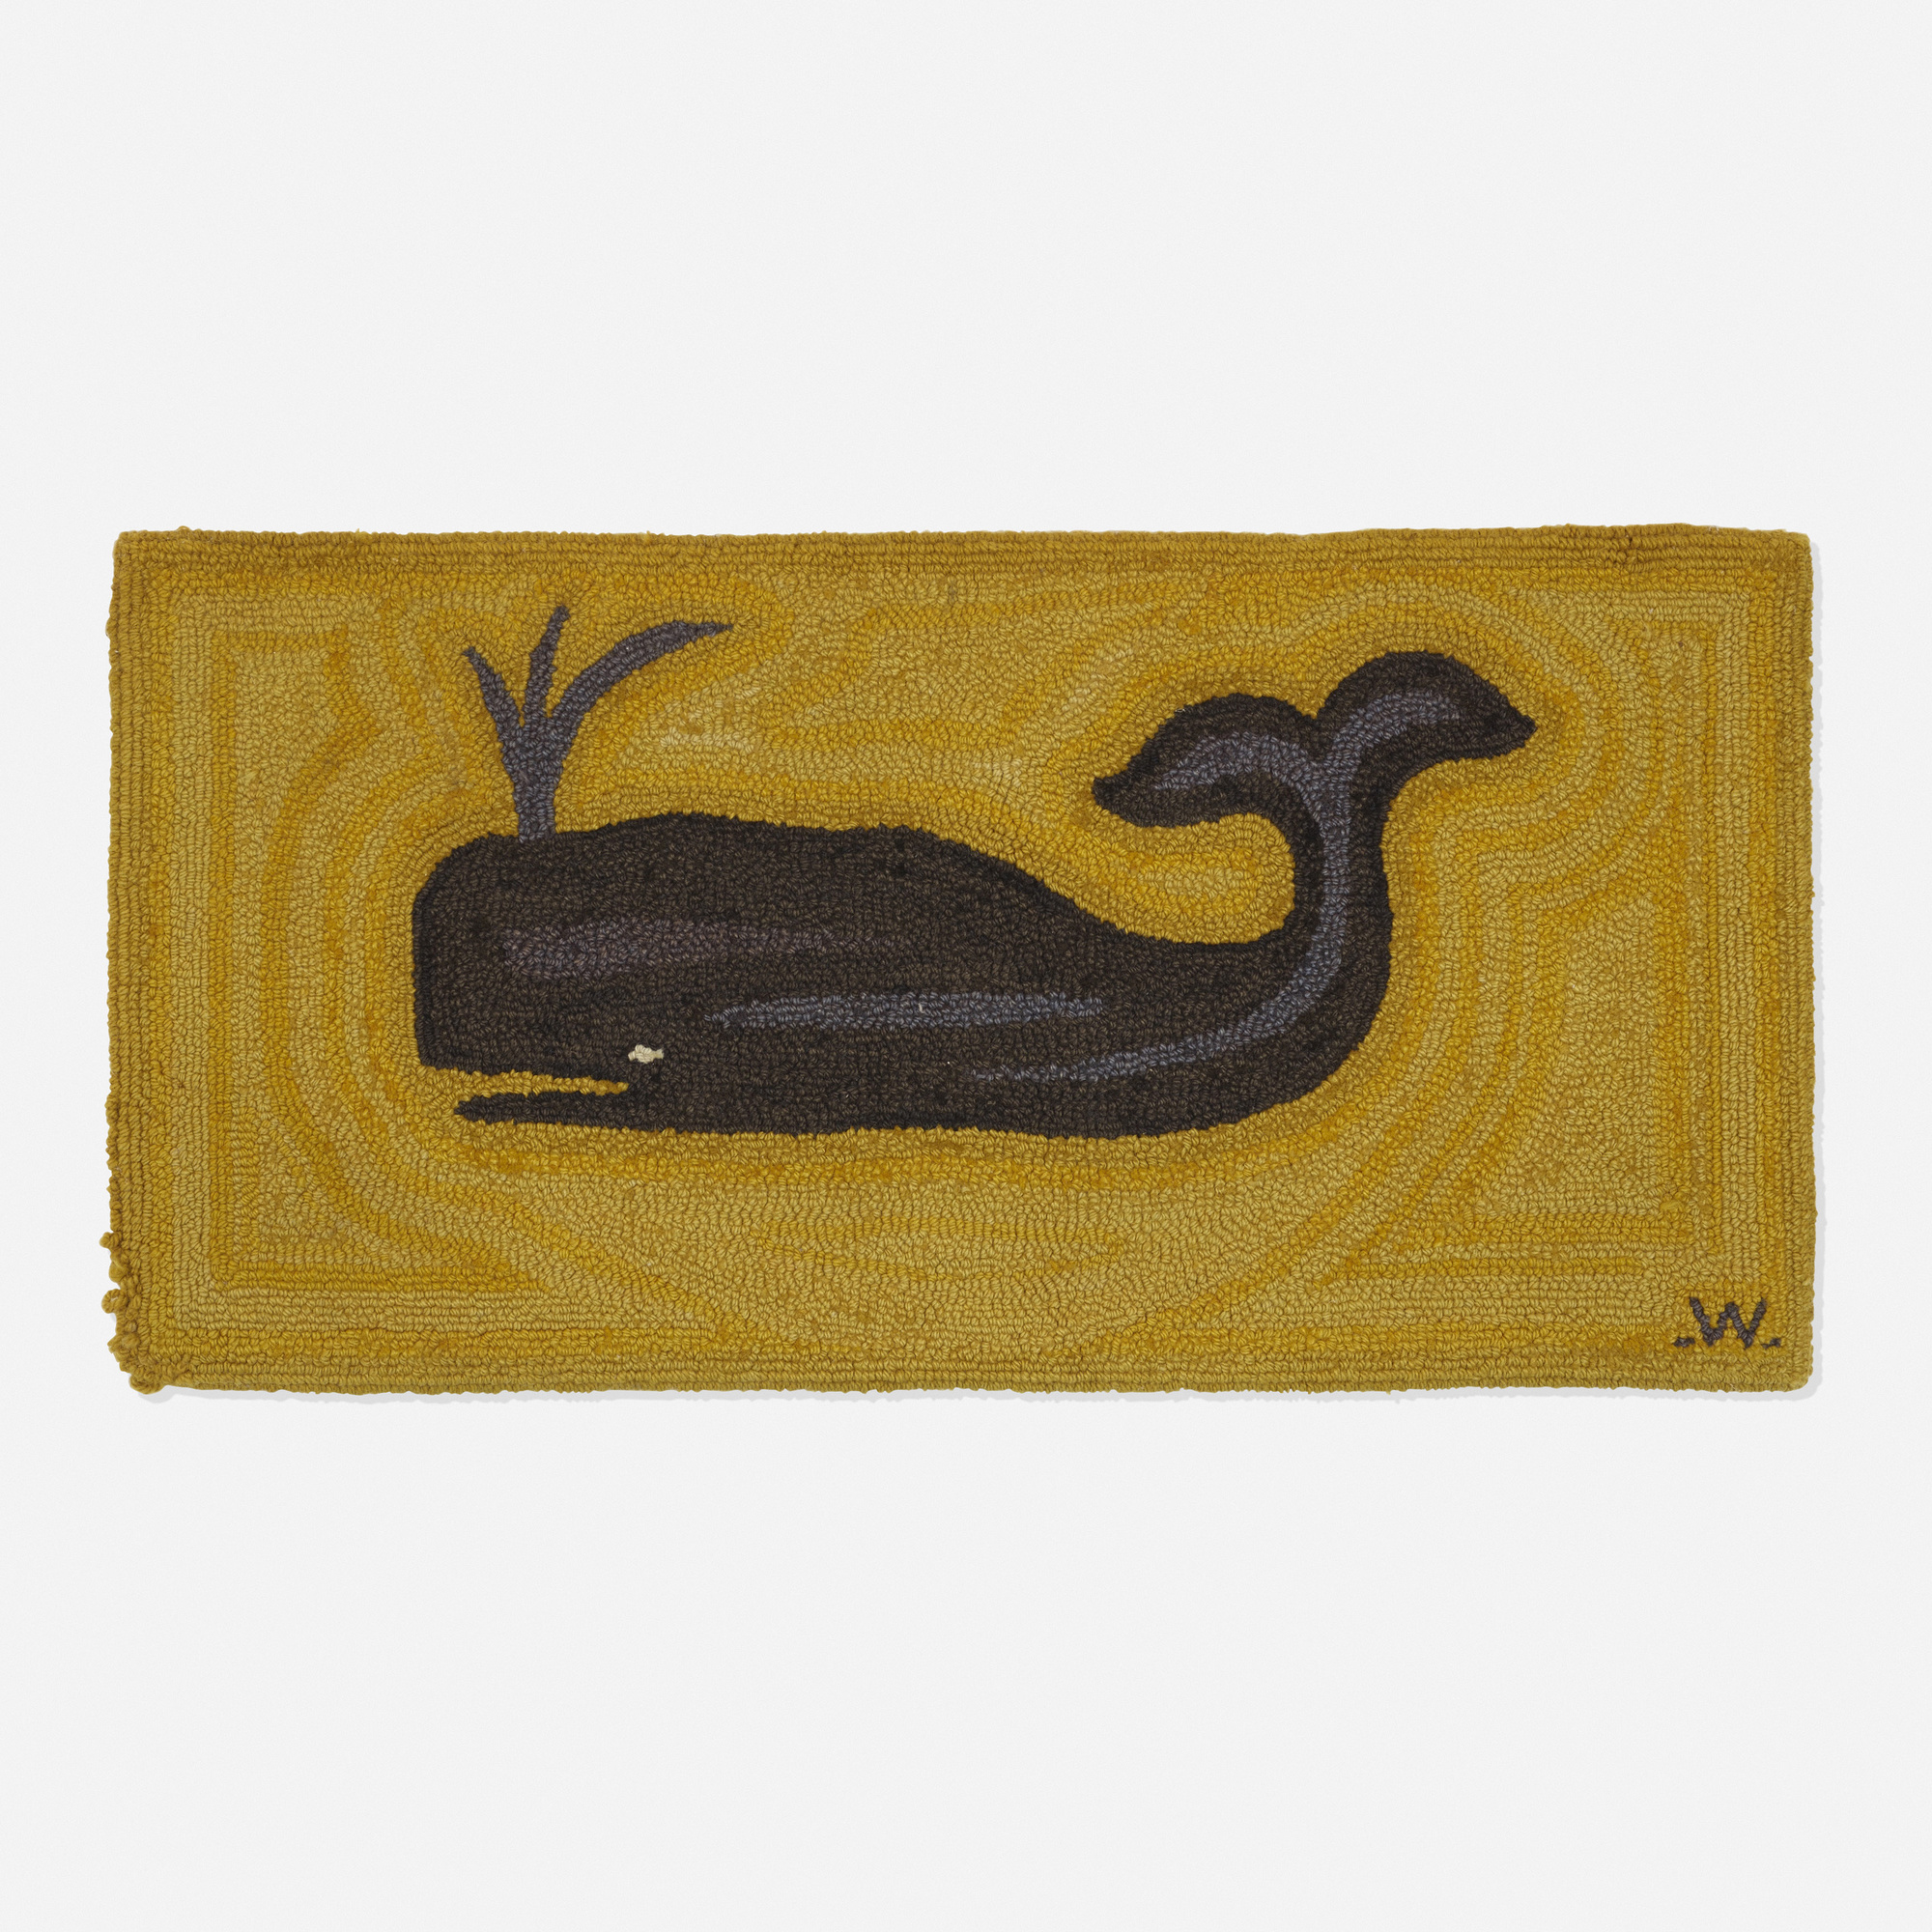 793: George Wells / Spouting Whale rug (1 of 1)